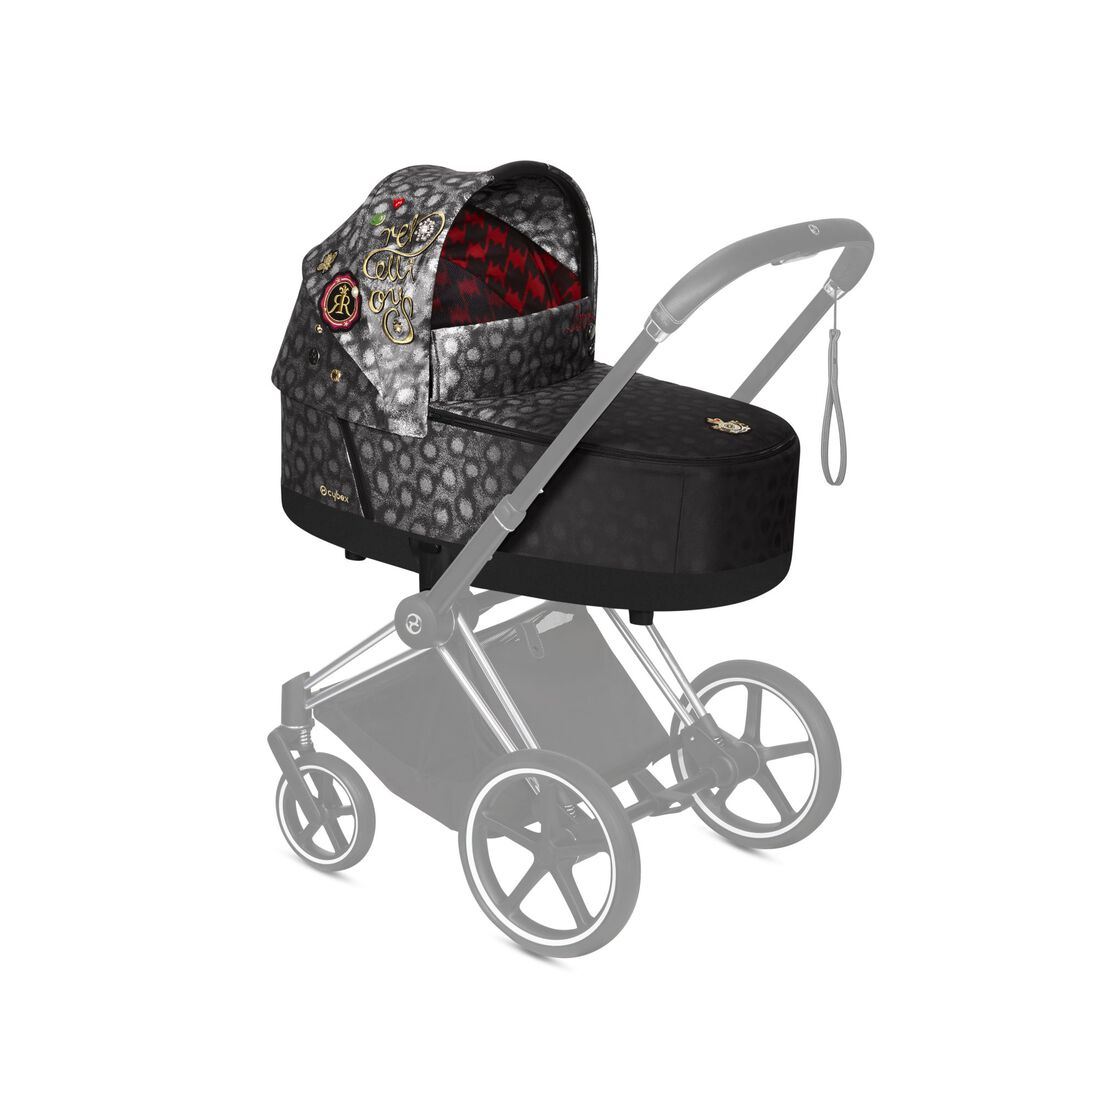 CYBEX Priam Lux Carry Cot - Rebellious in Rebellious large image number 4